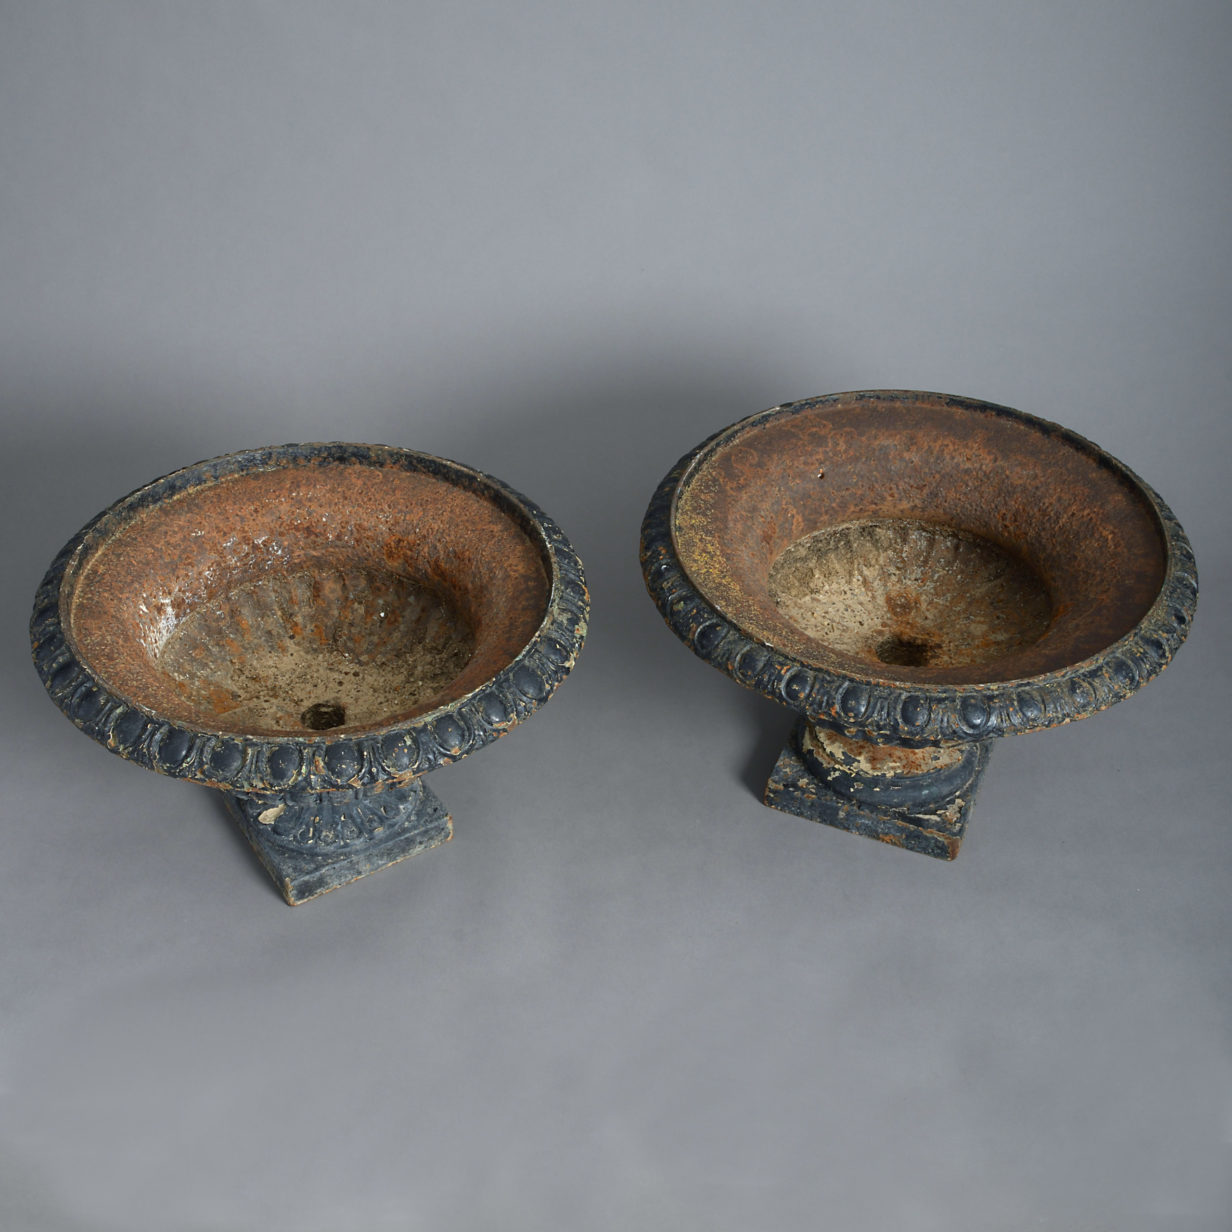 Pair of Cast Iron Tazze